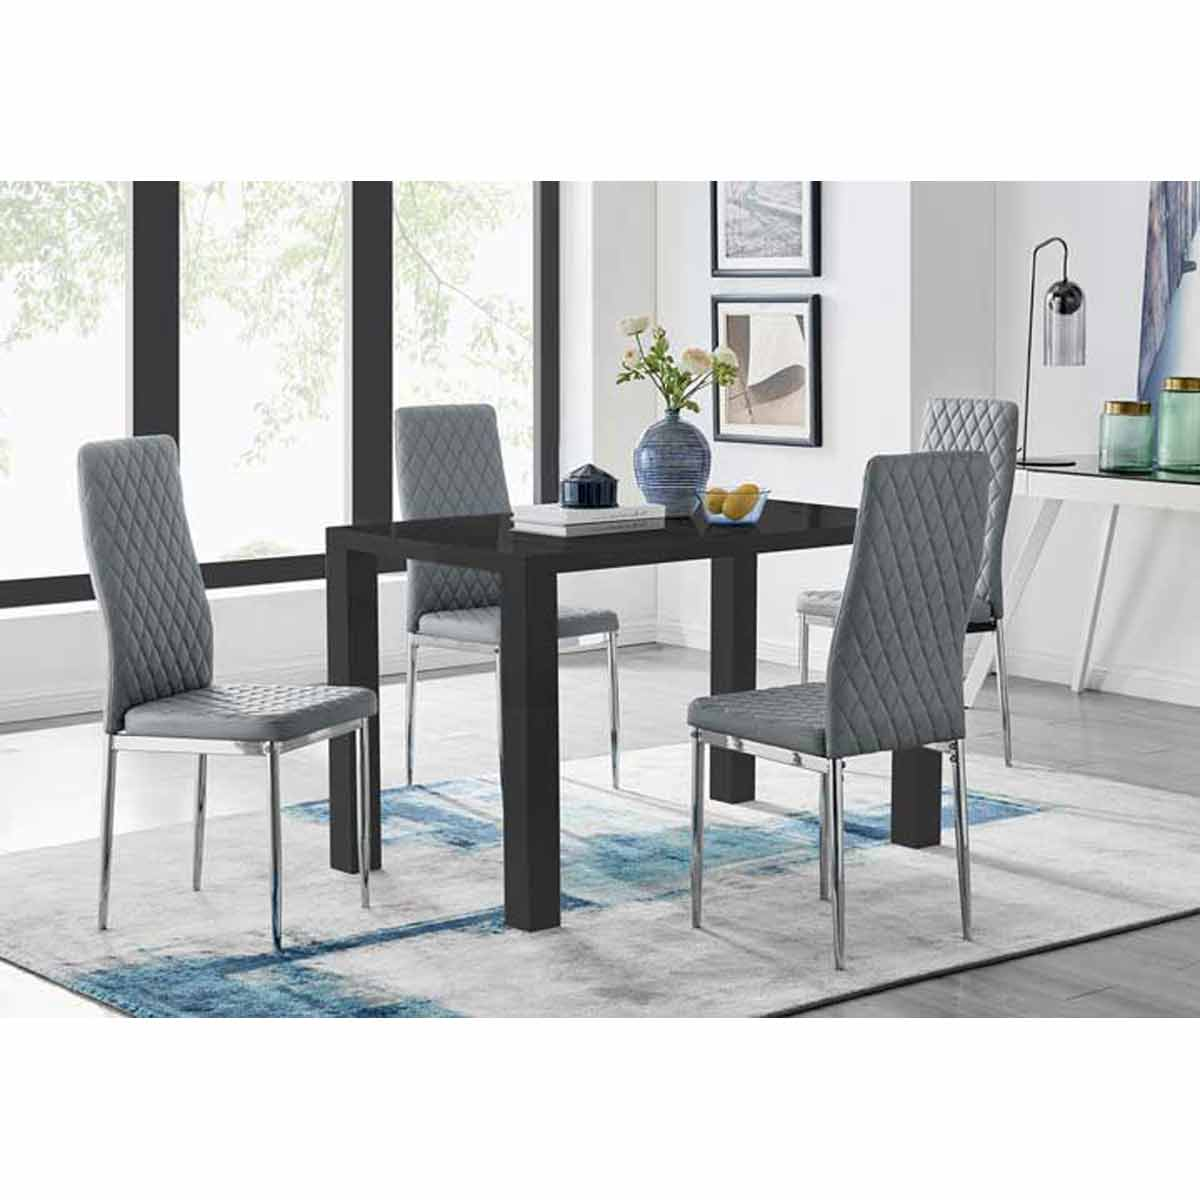 Furniture Box Pivero Black High Gloss Dining Table and 4 Grey Milan Chairs Set